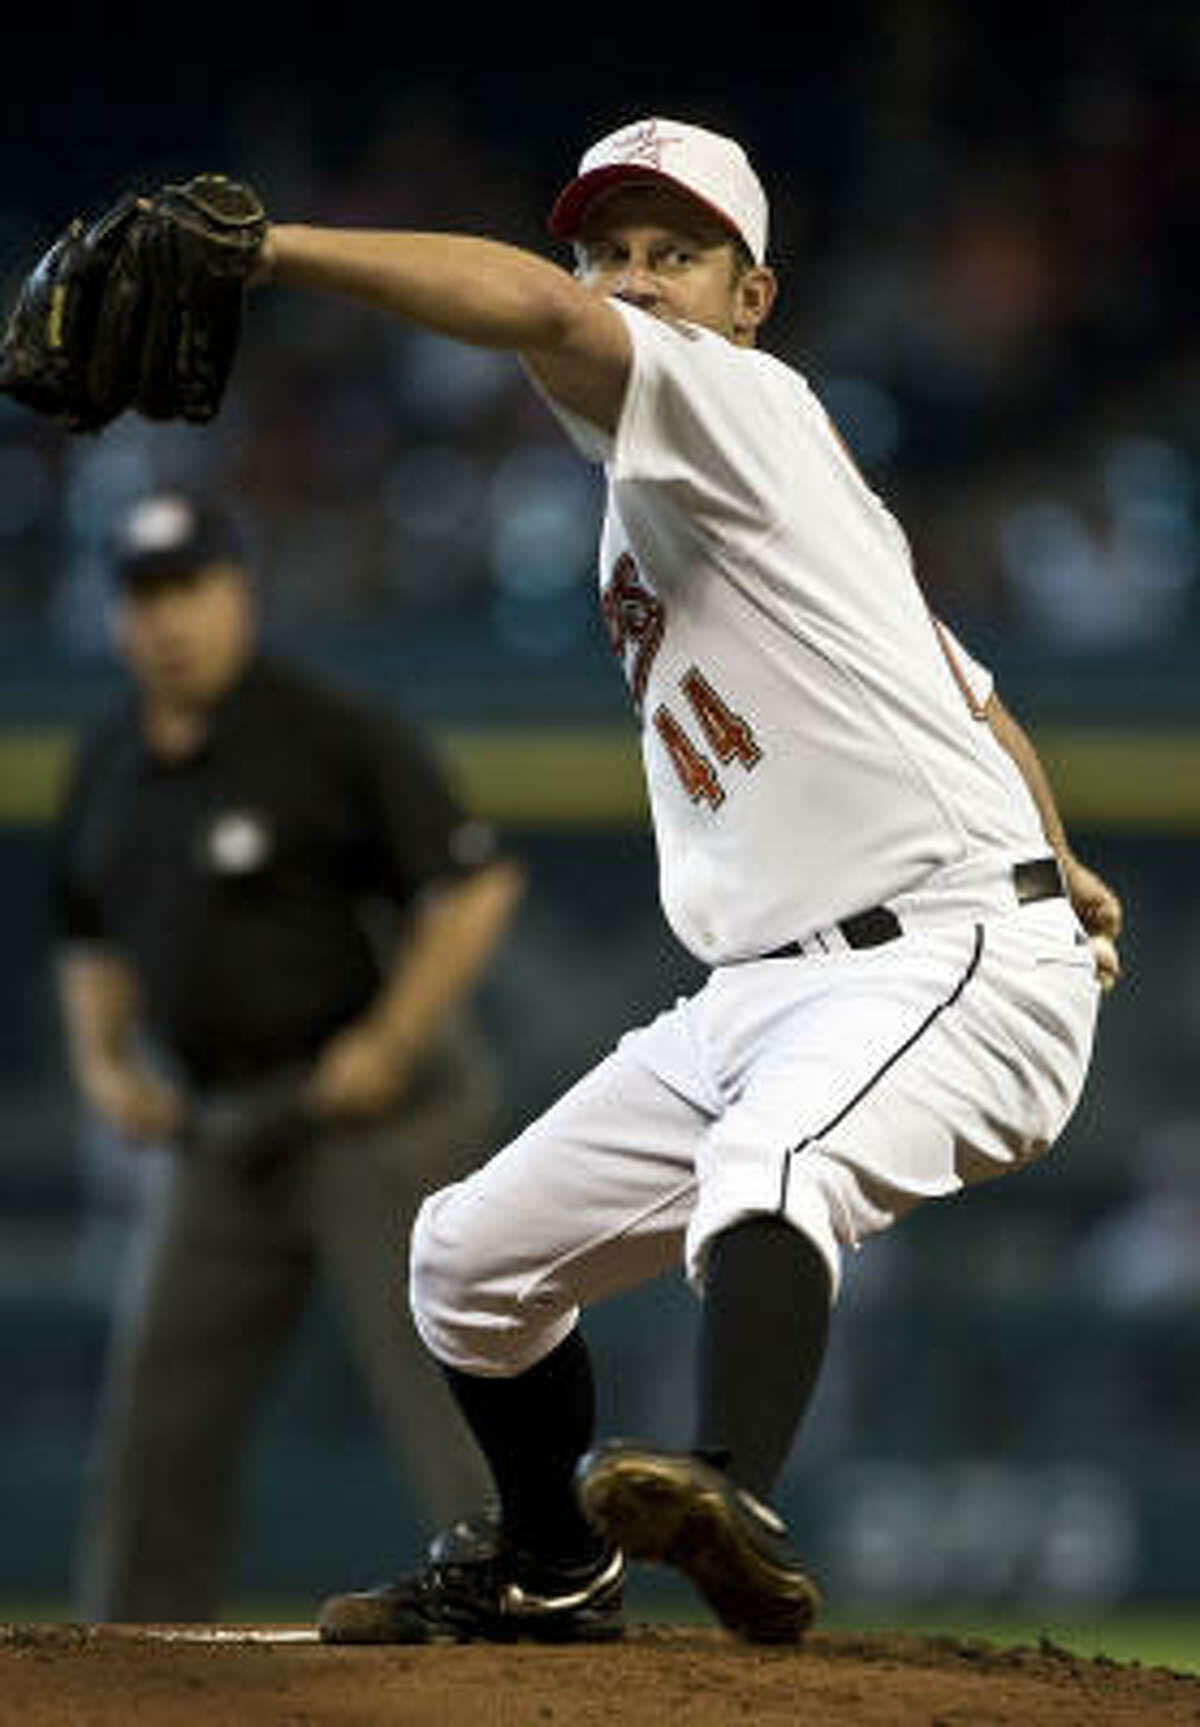 The Astros' ability to trade Roy Oswalt may depend on how much of the contract they would absorb.